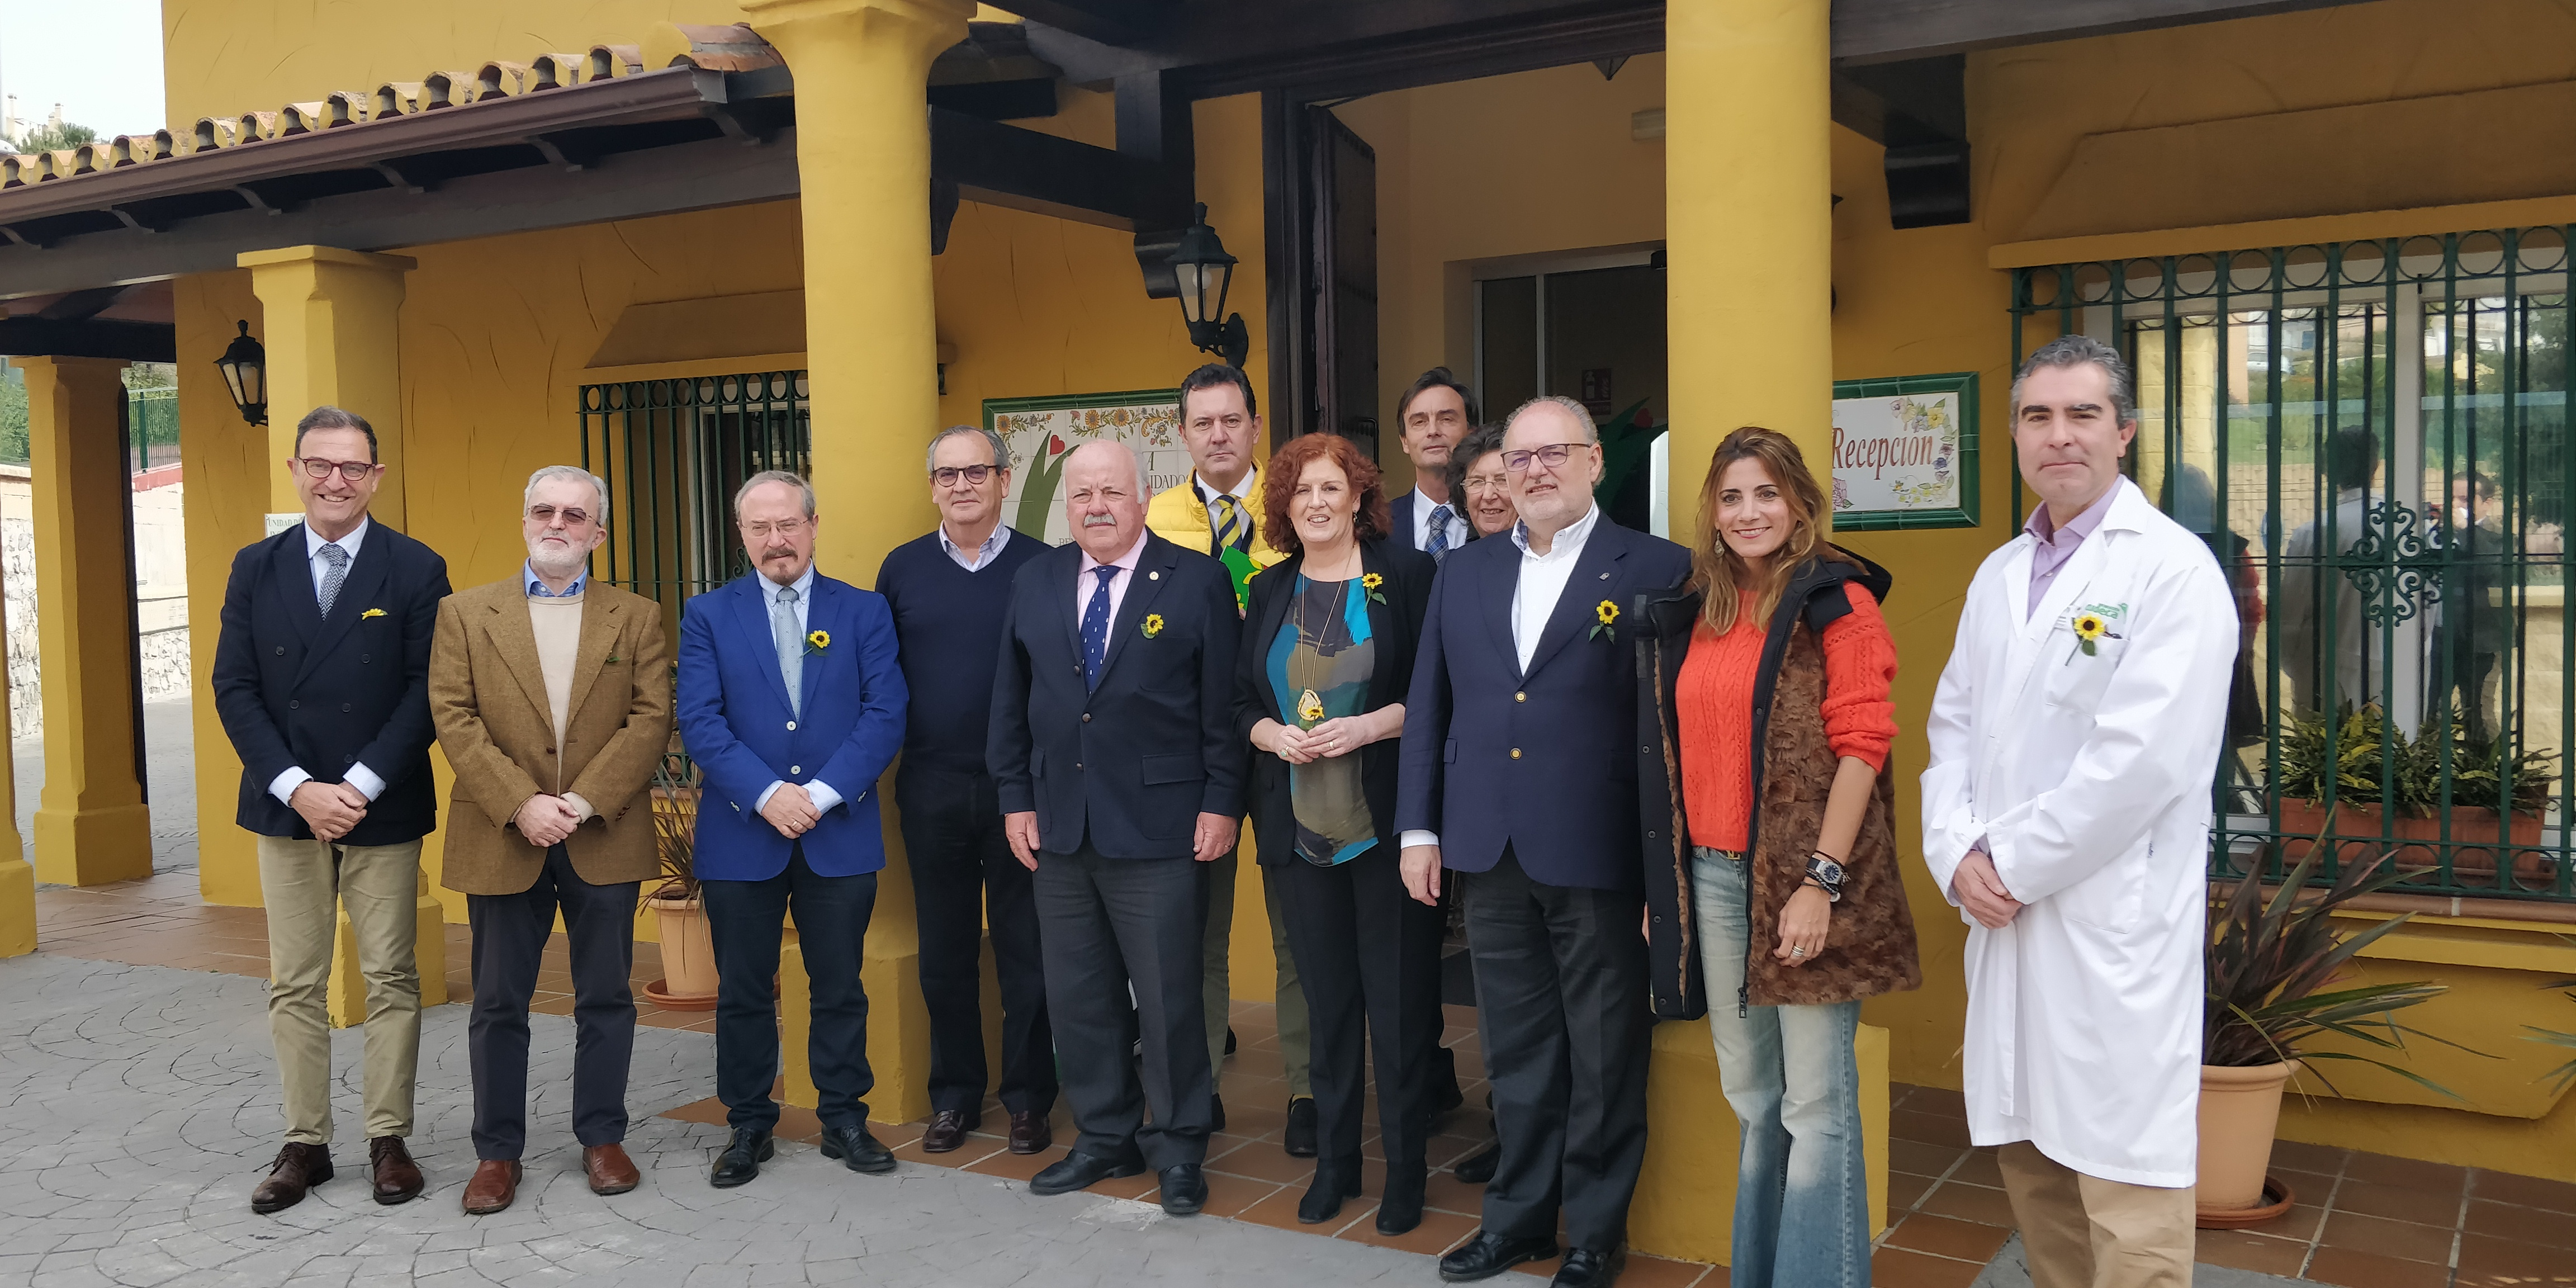 The Minister of Health and Family Affairs visits the Cudeca Hospice